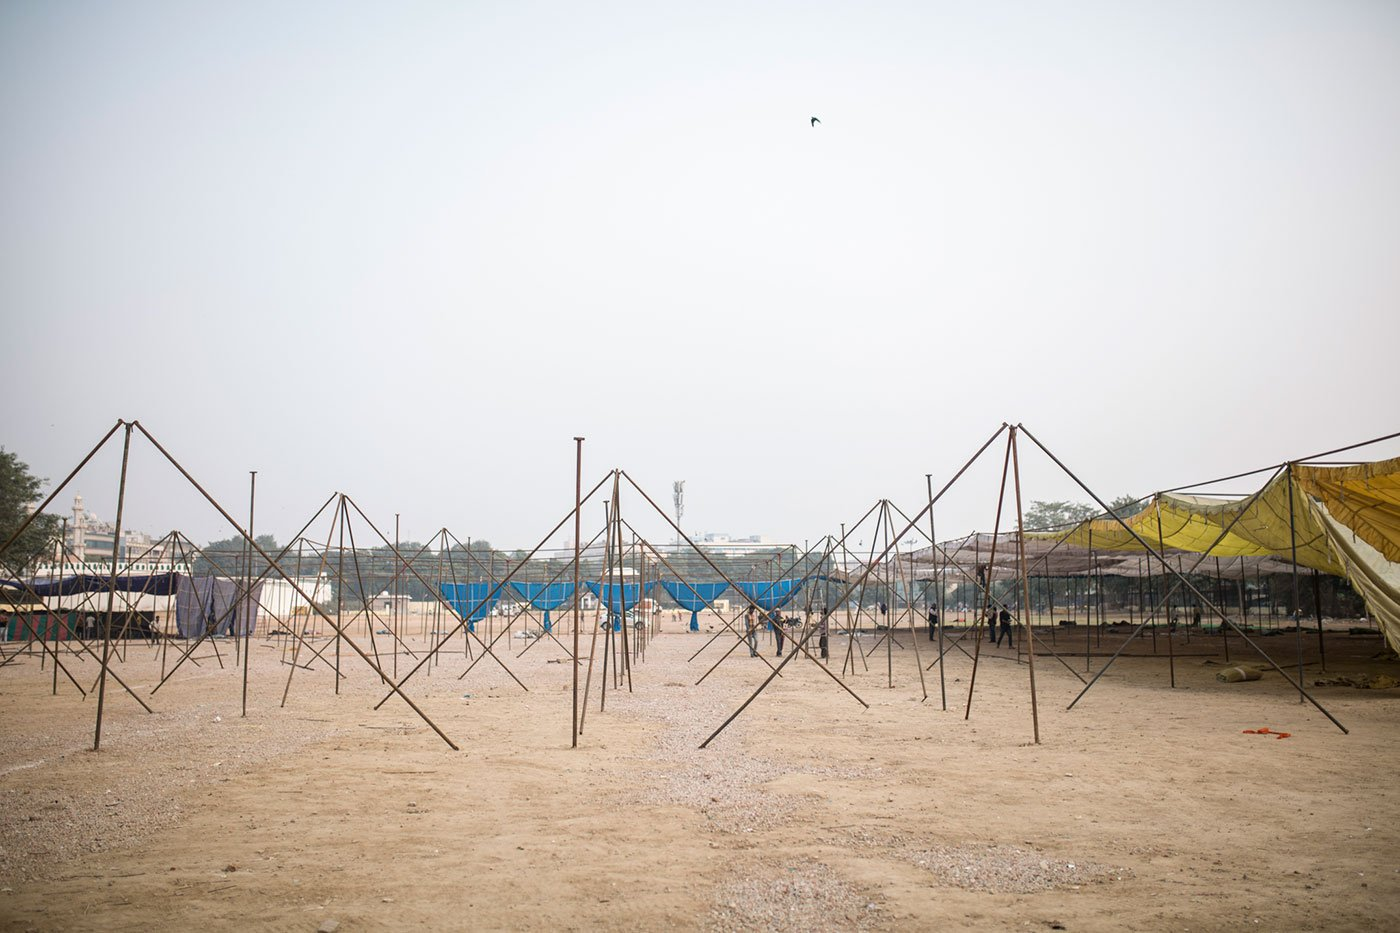 Tent poles at Ramlila Maidan